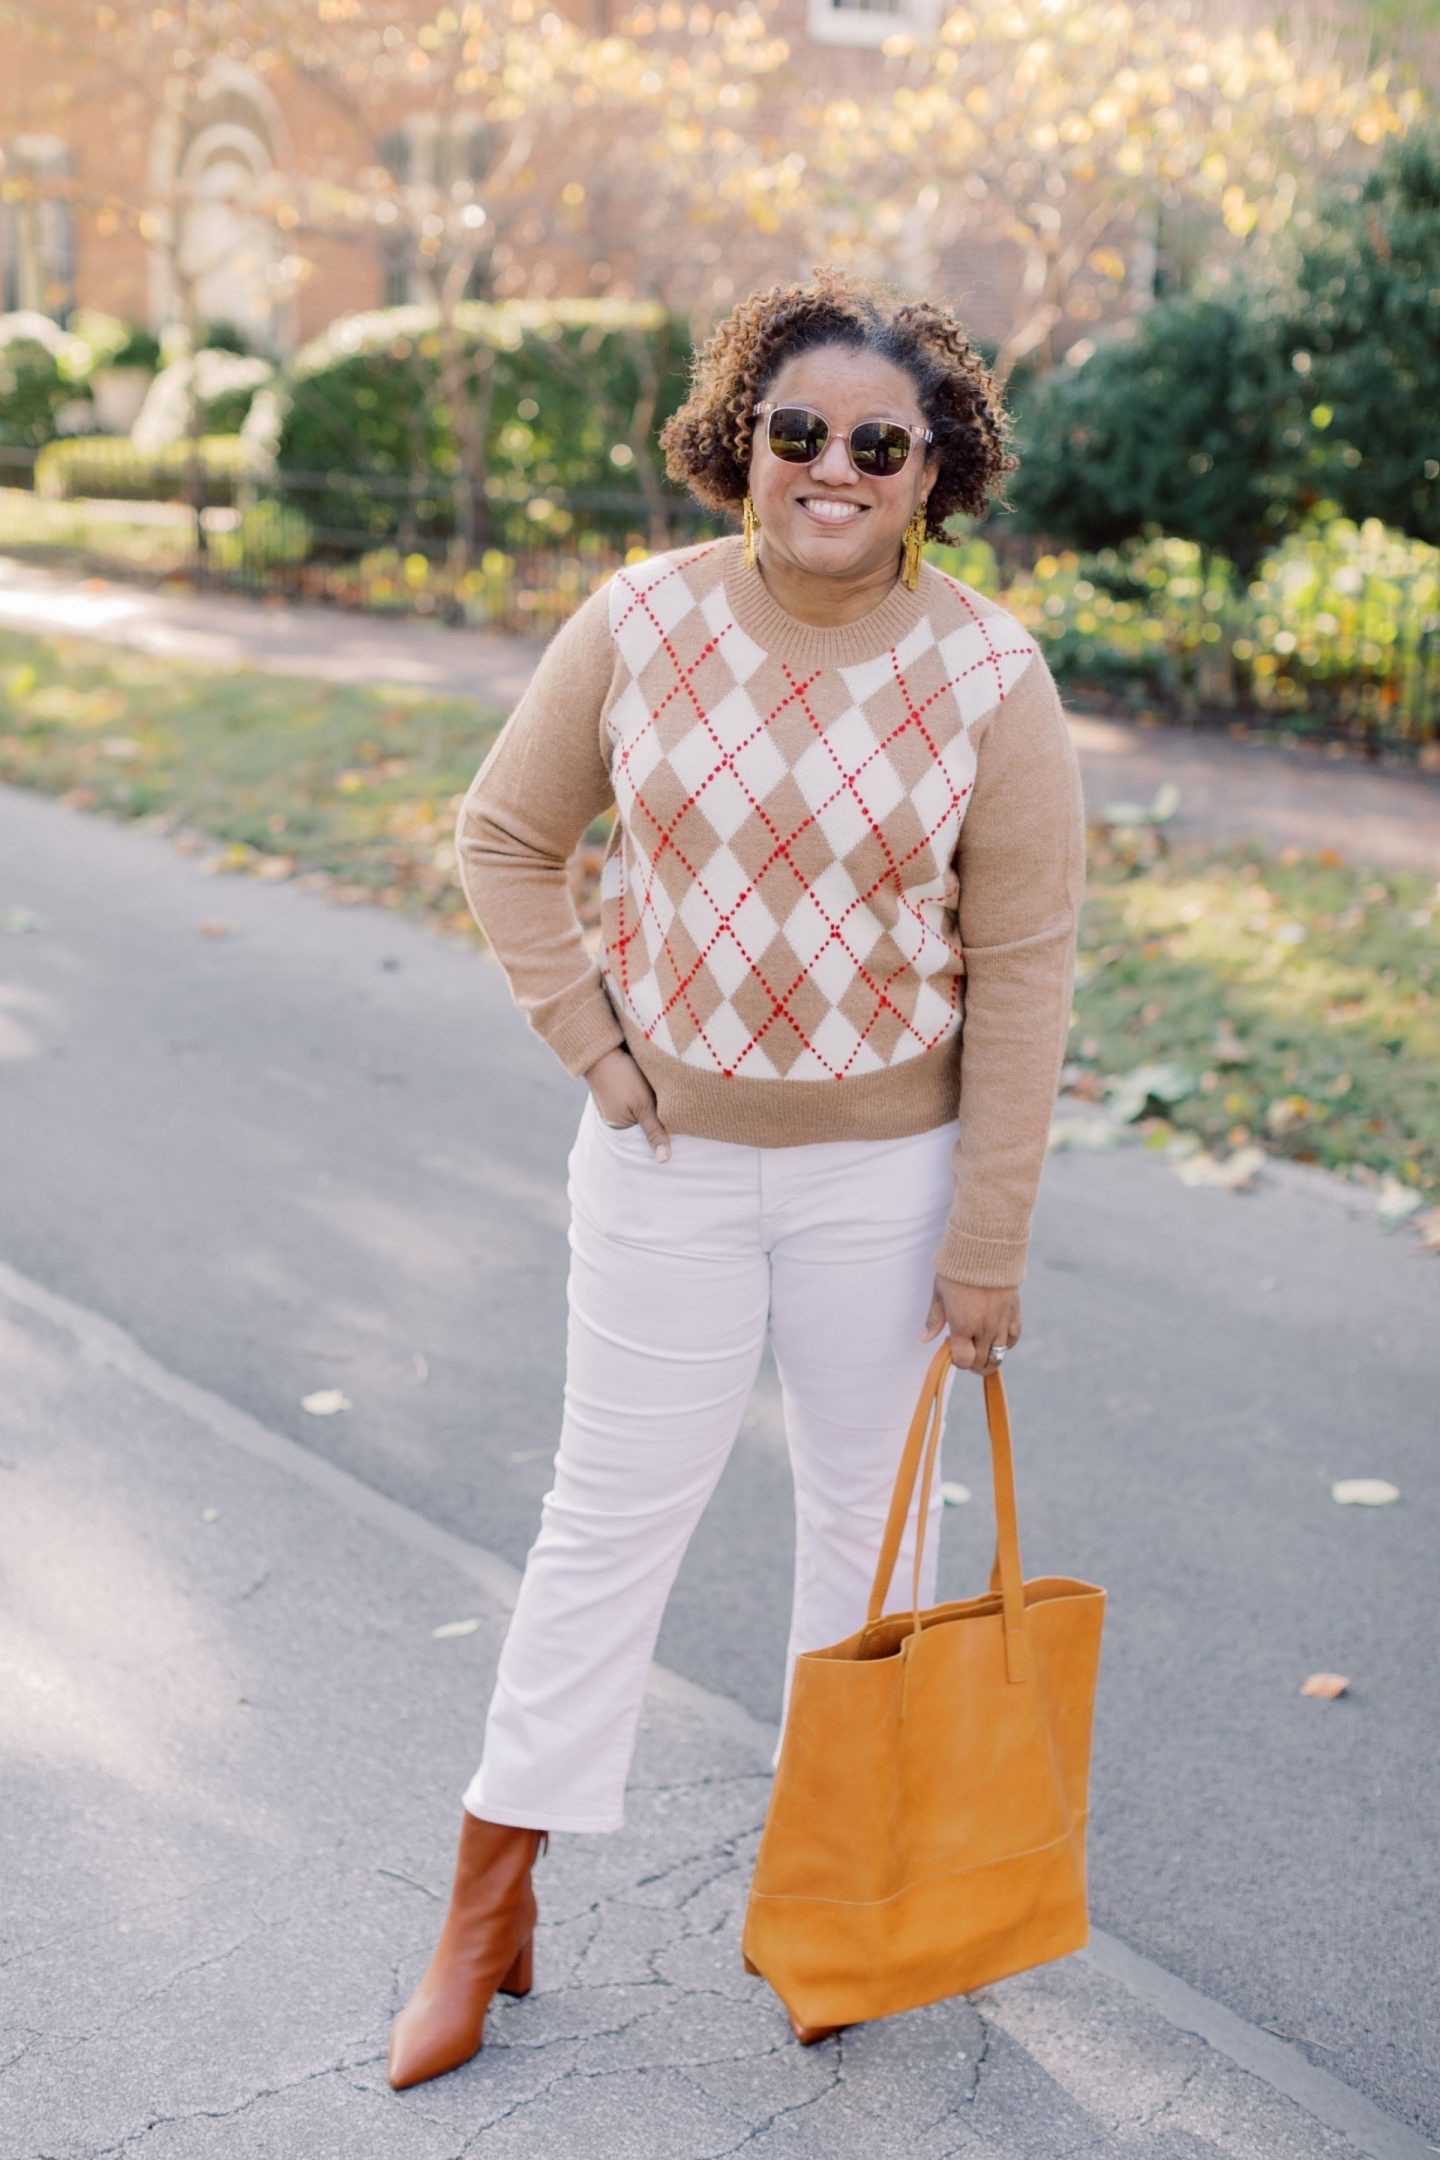 Fall Sweaters by popular Kentucky fashion blog, Really Rynetta: image of a woman wearing a J. Crew argyle sweater, Madewell Cali Demi-Boot Jeans in Pure White, Kendra Scott Holland Statement Earrings In Vintage Gold, J. Crew Pointed-toe Sadie boots in leather, and holding a leather tote bag.